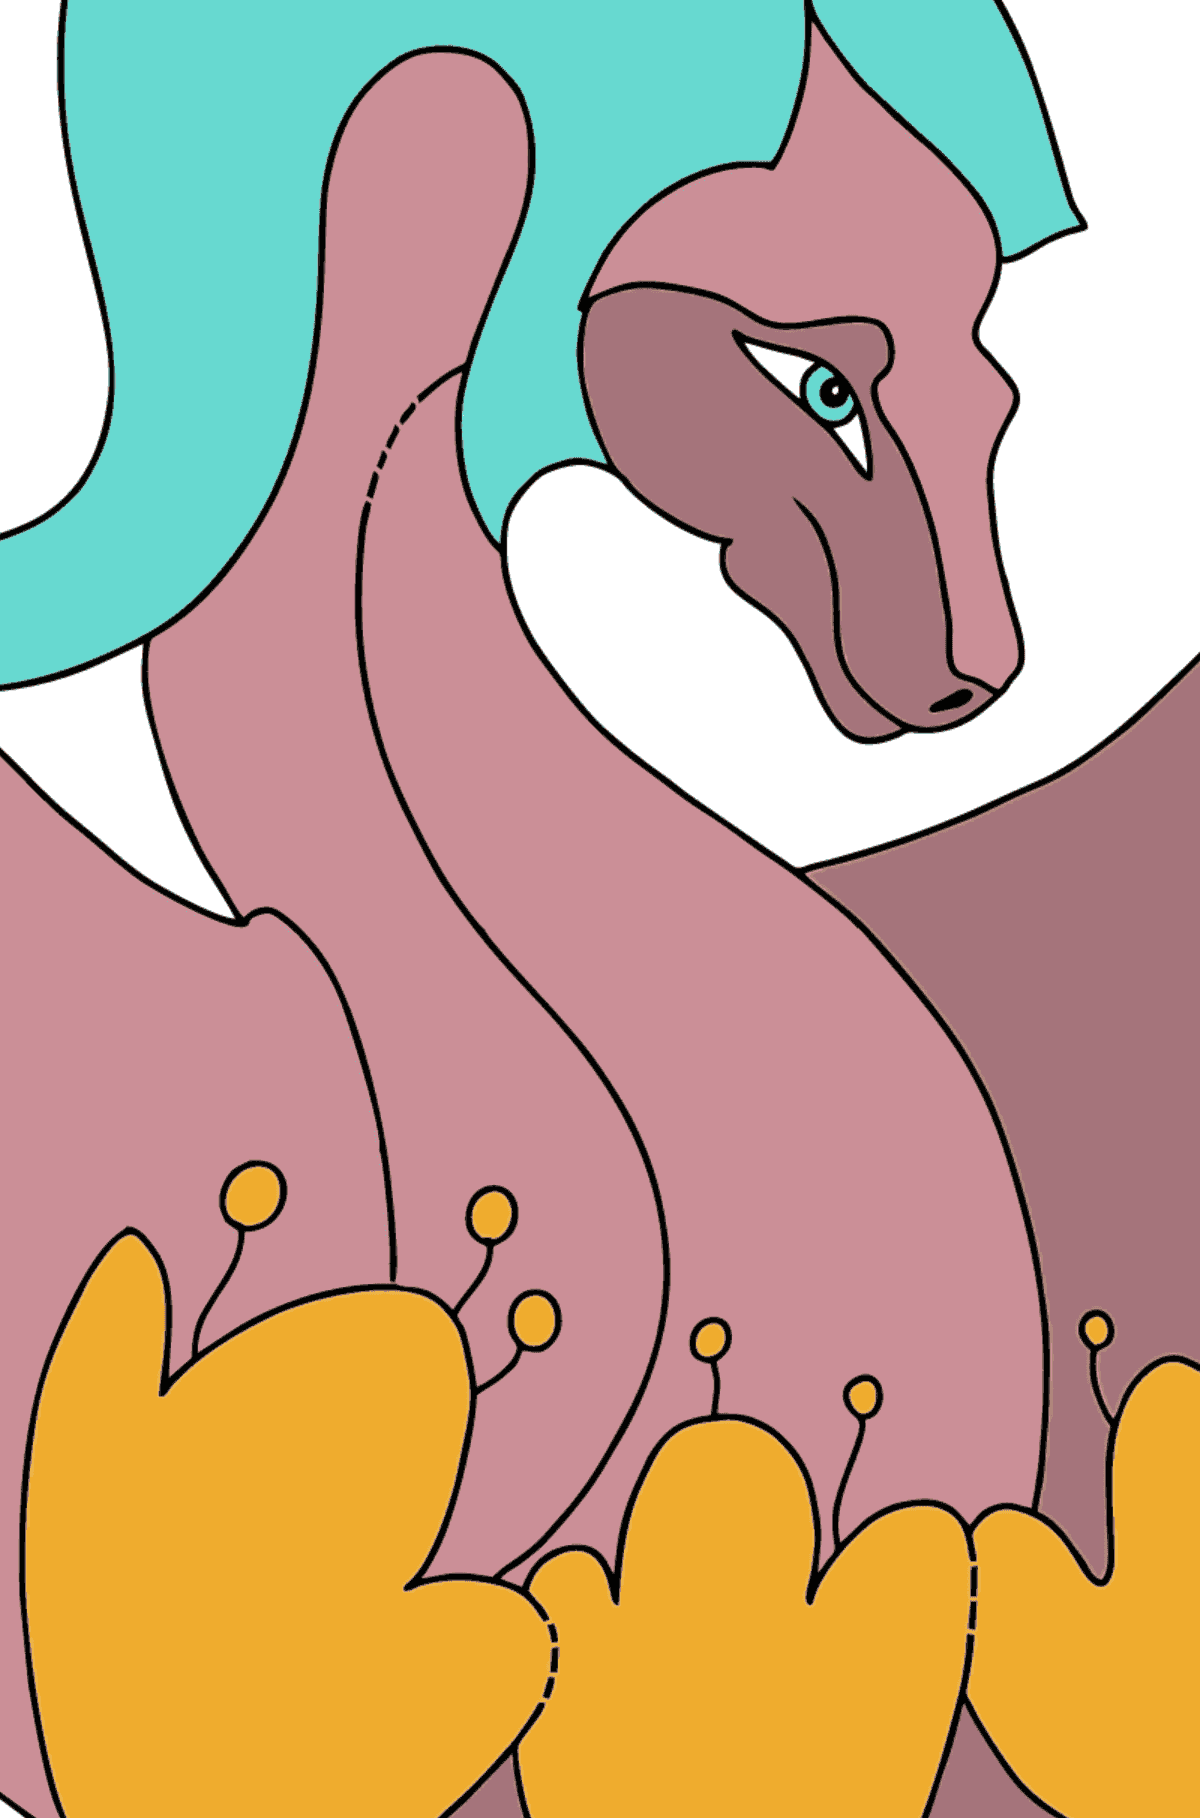 Coloring Page - A Dragon of the Violet Color - Math Coloring - Addition for Kids